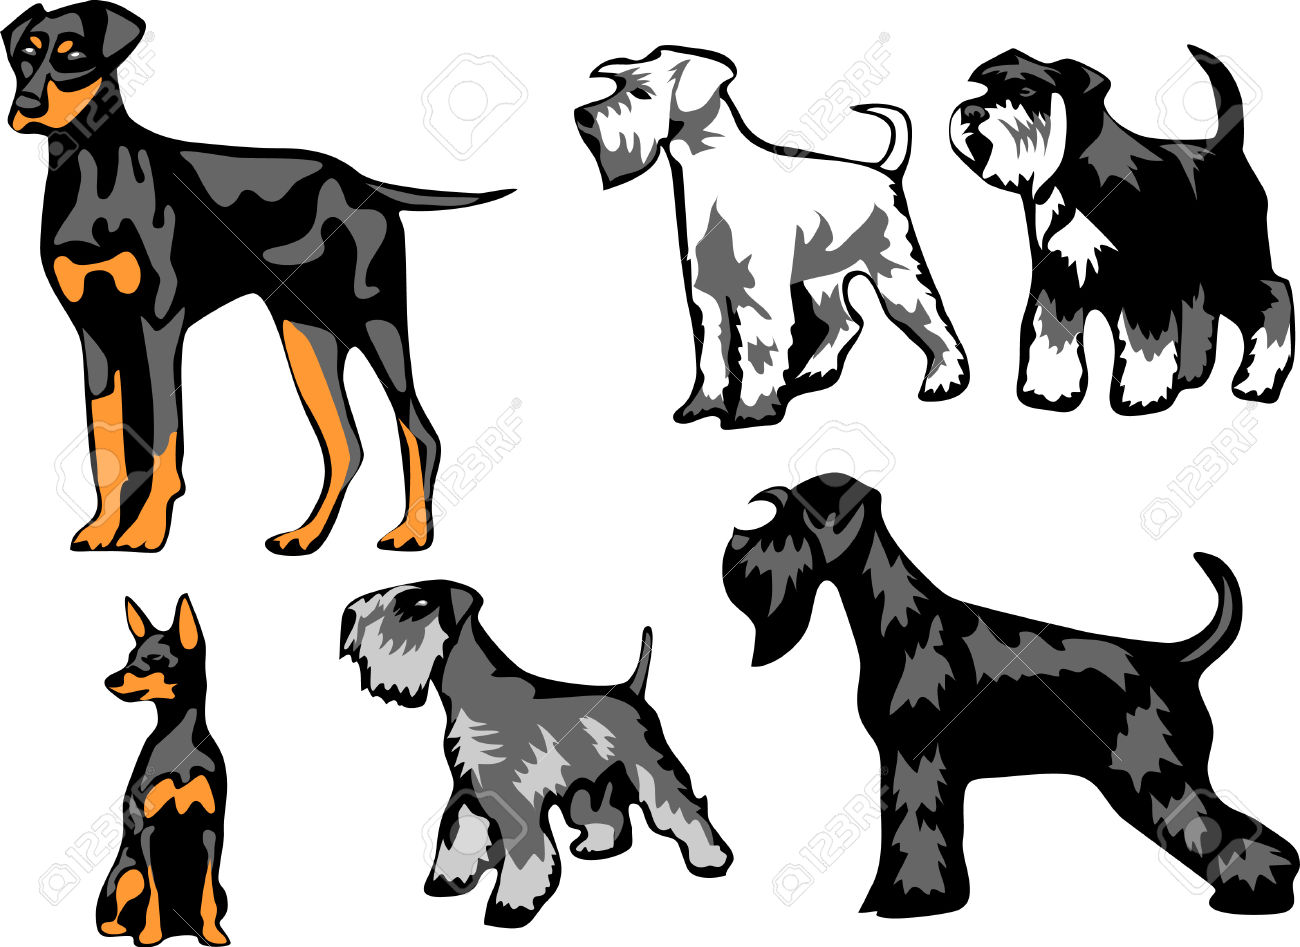 Miniature Pinscher clipart #12, Download drawings